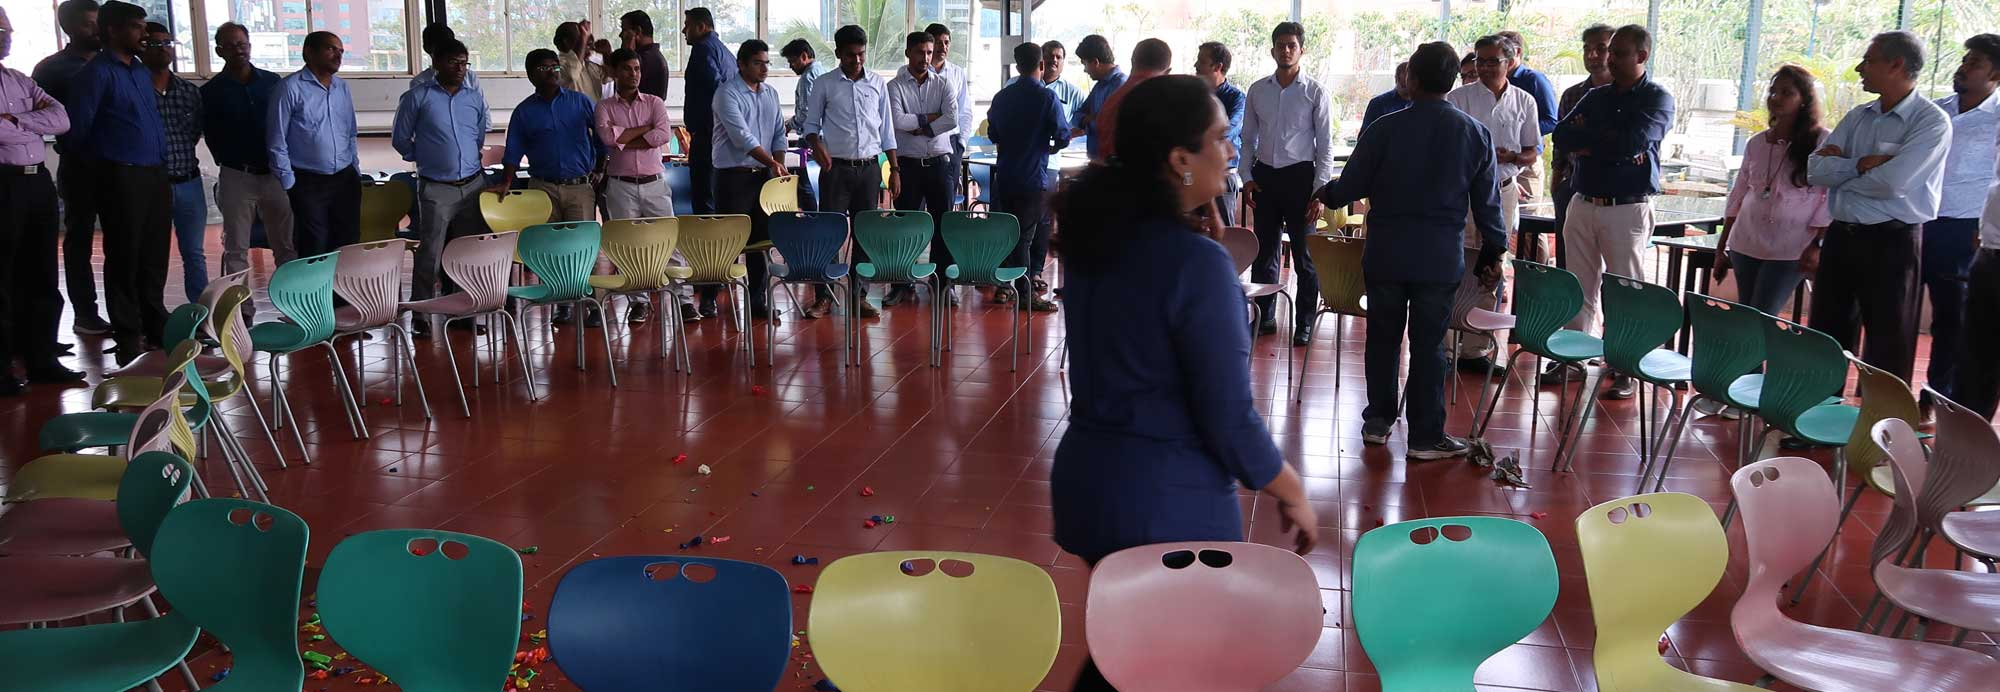 Fun activities conducted at Valdel for New Year